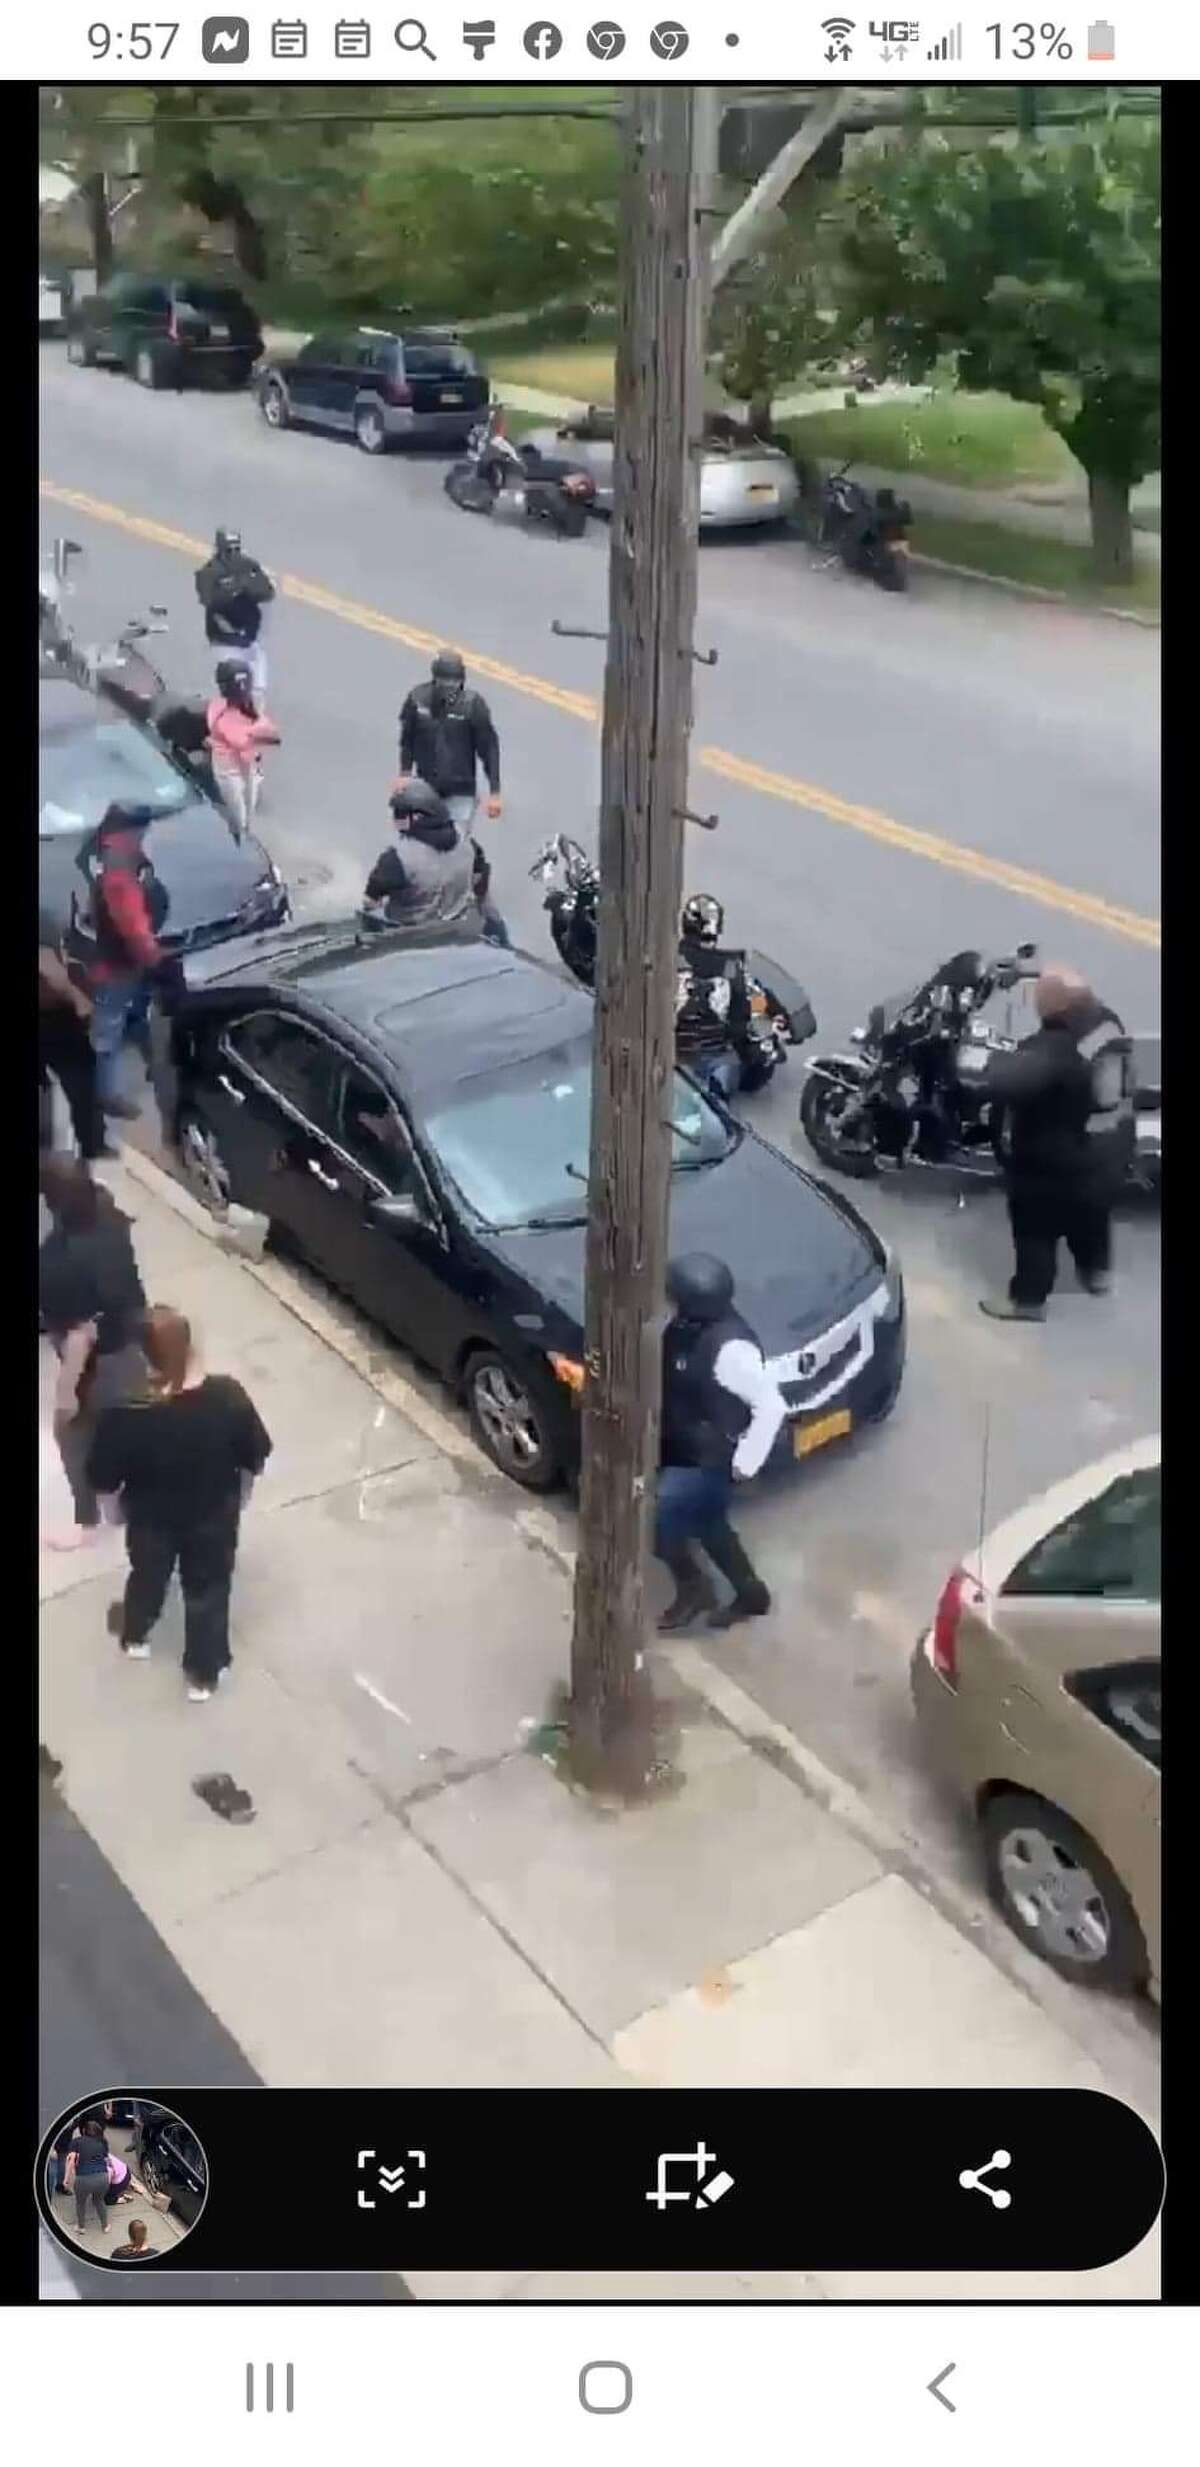 Joseph P. Brady, a longtime legislative aide to a Brooklyn assemblyman, is pictured at right in this undated photo, his arms crossed, as members of his motorcycle club, East Coast Syndicate, are involved in a brawl on a Troy street. (Provided photo)